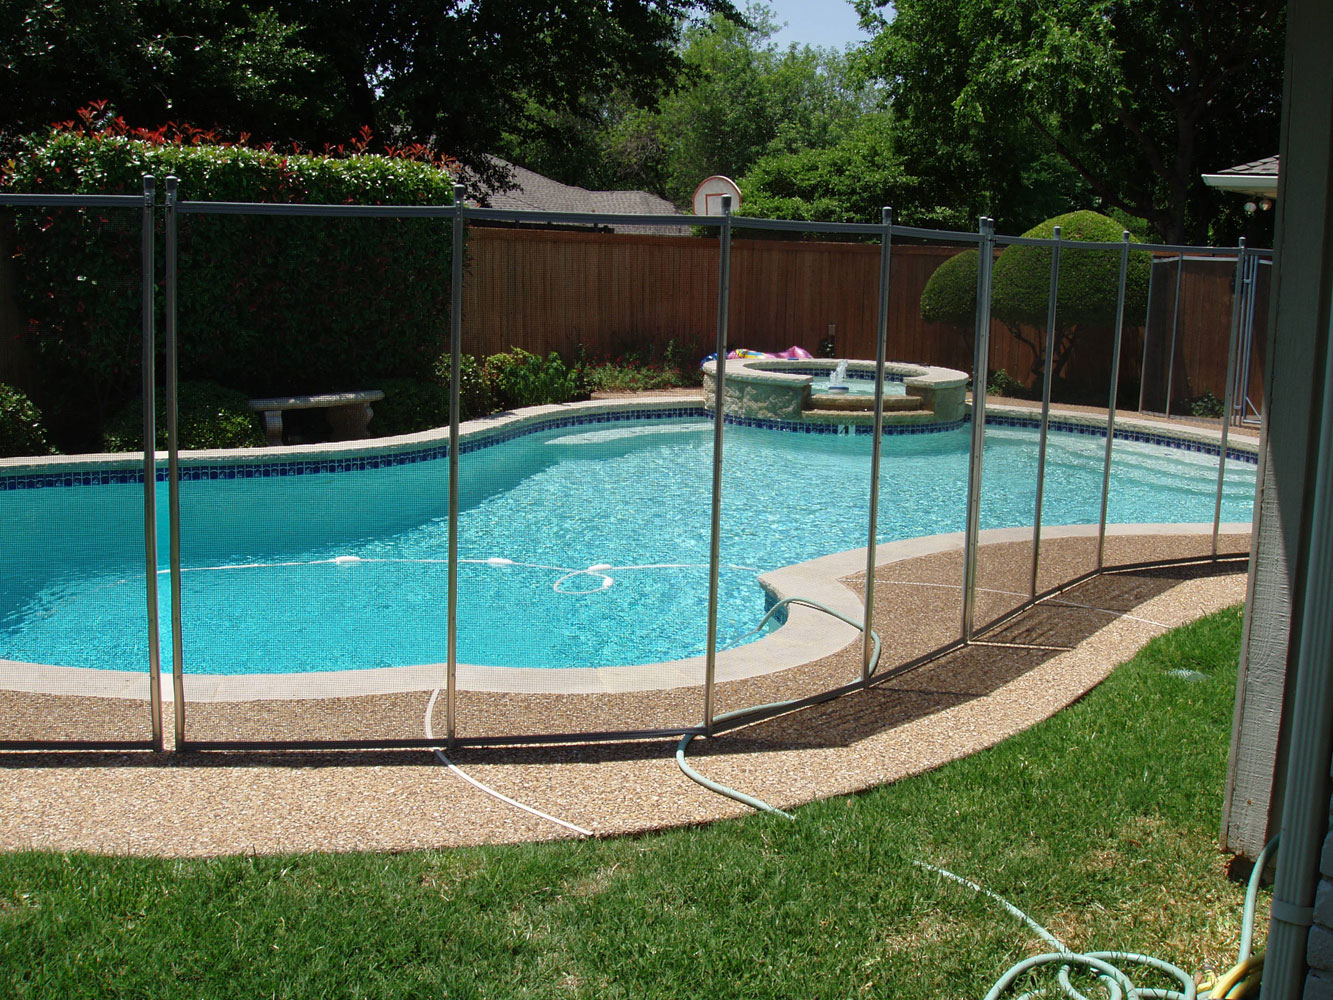 Pool Designs And Cost infinity edge swimming pools and their cost with picture of best overflow swimming pool What Does A Small Pool Fence Cost To Buy